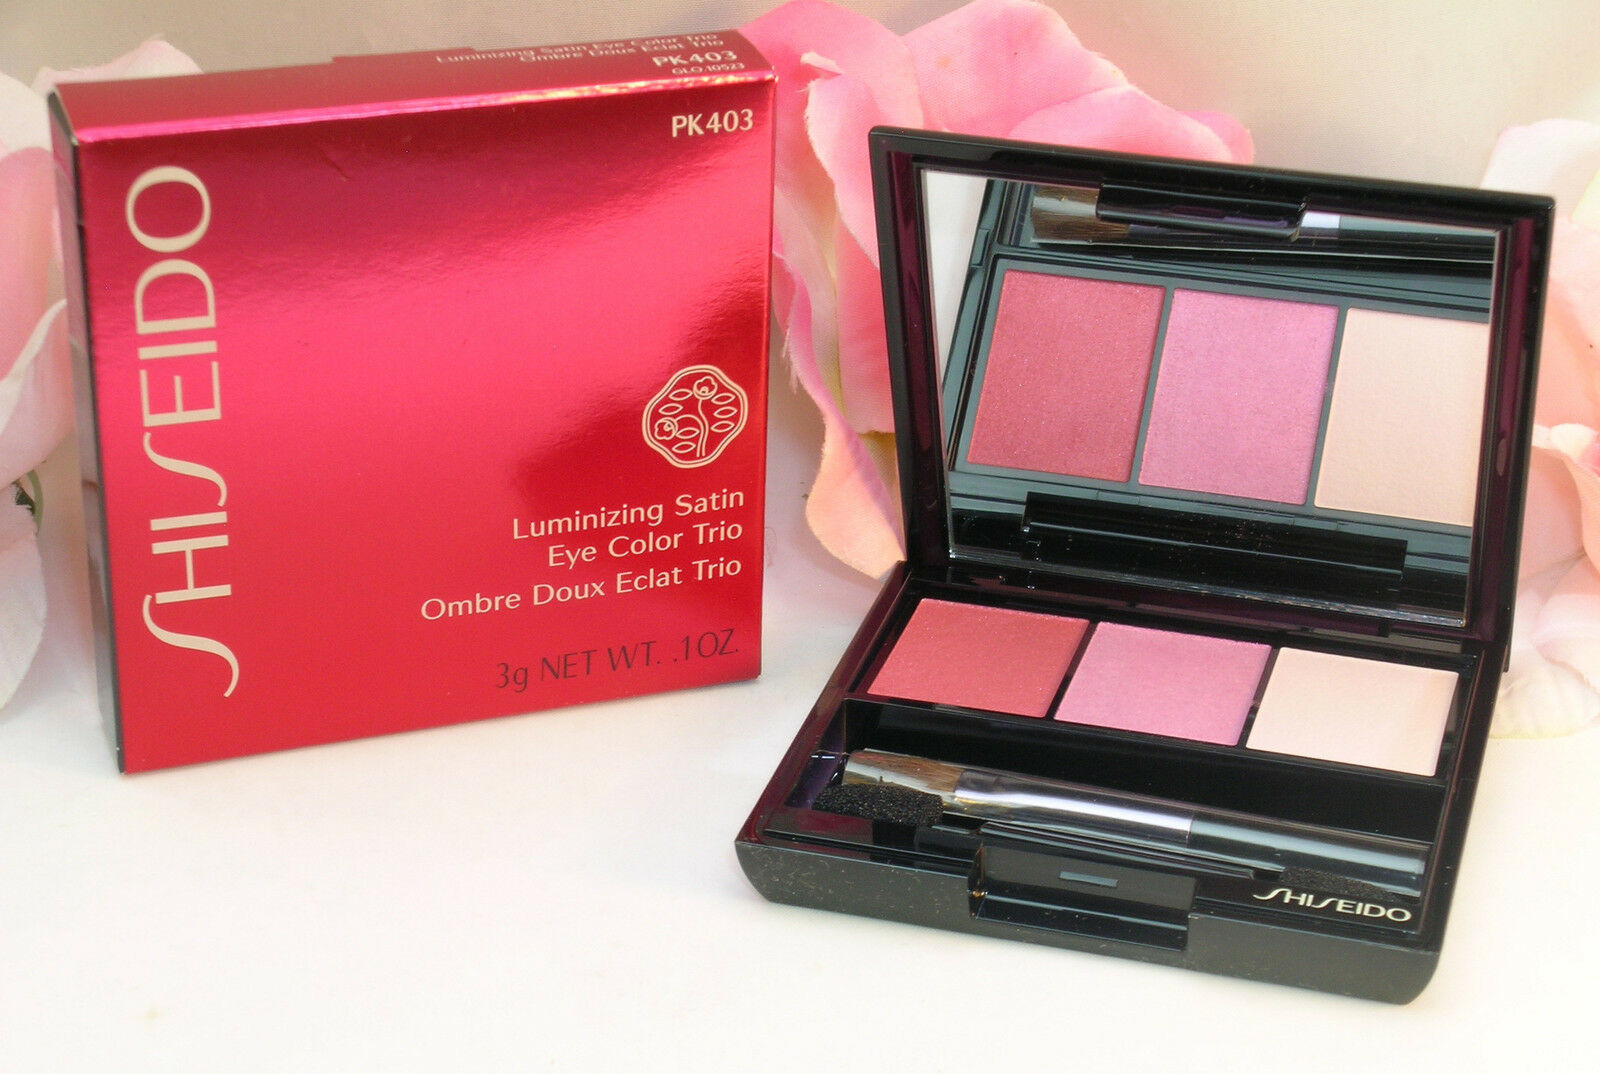 Primary image for New Shiseido Luminizing Satin Eye Color Trio PK403 .1oz / 3 g Peach Pink Cream